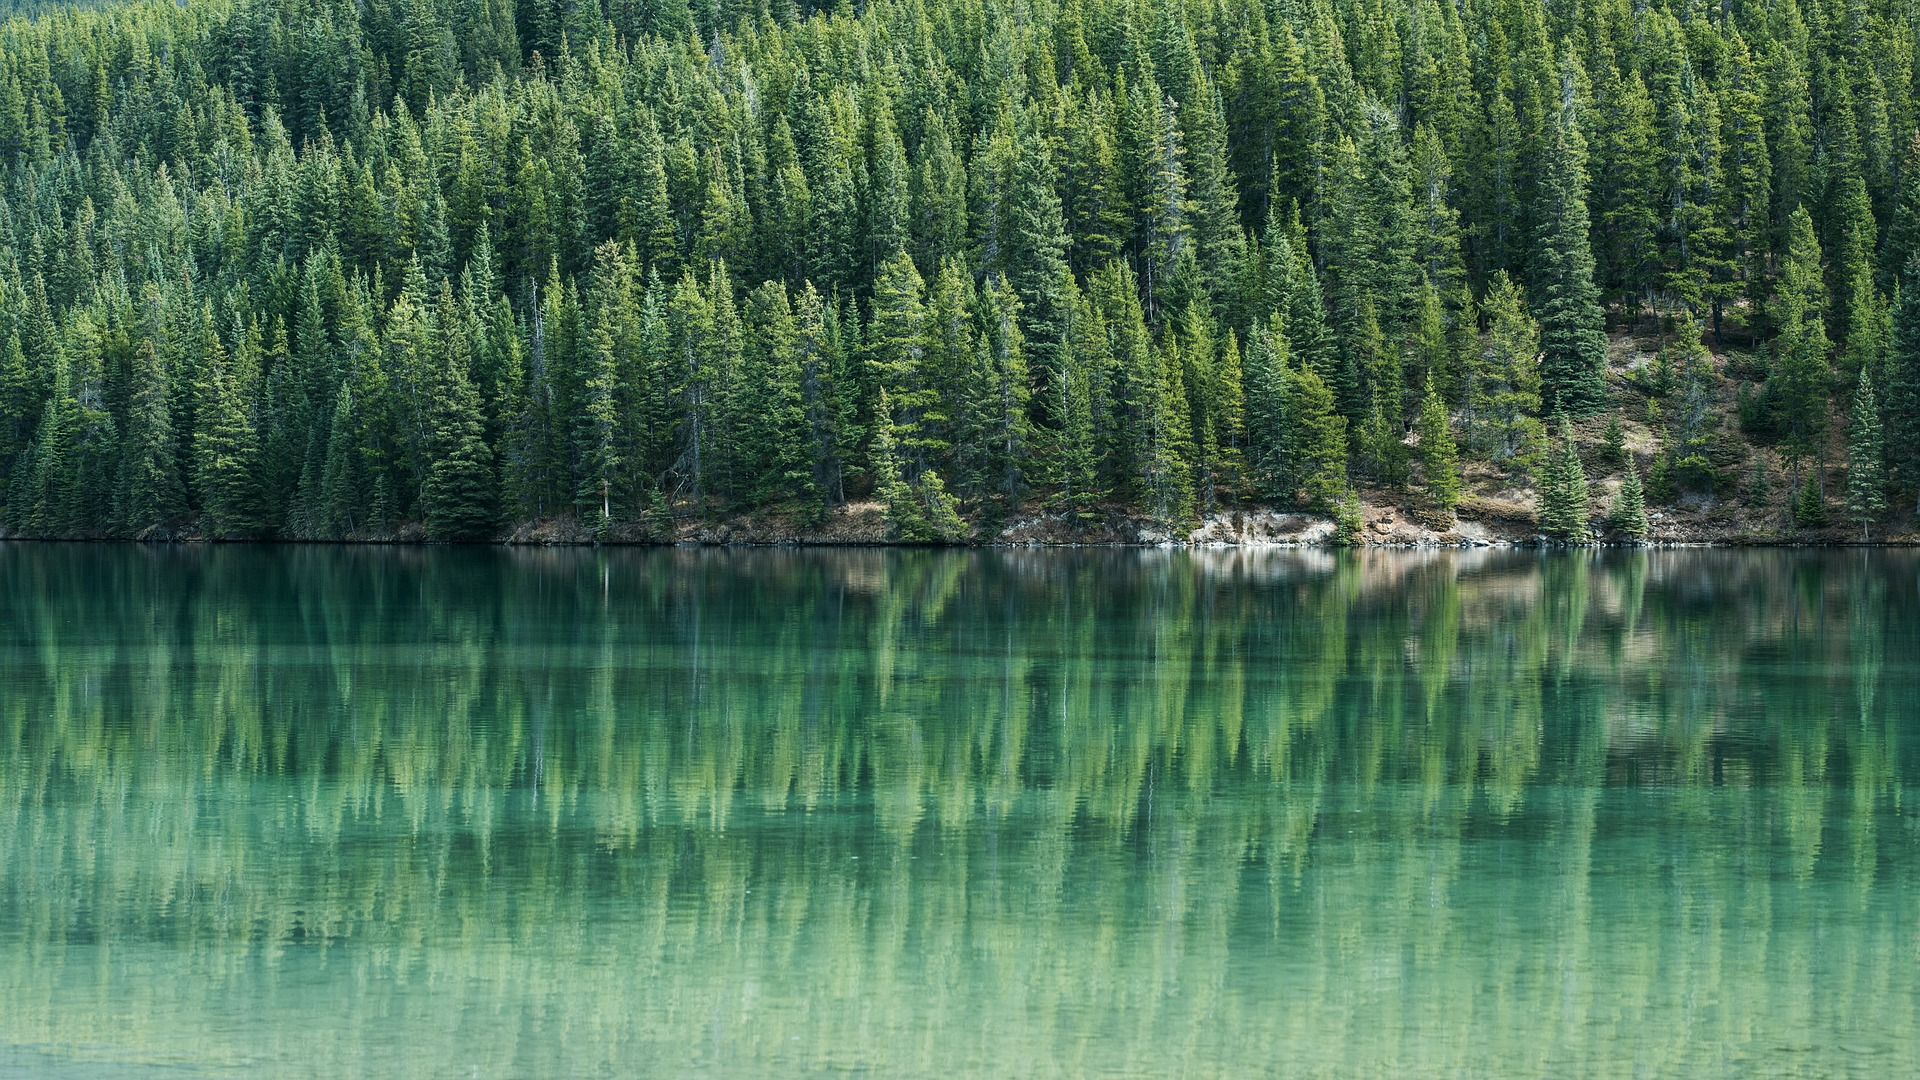 A green lake surrounded by trees.